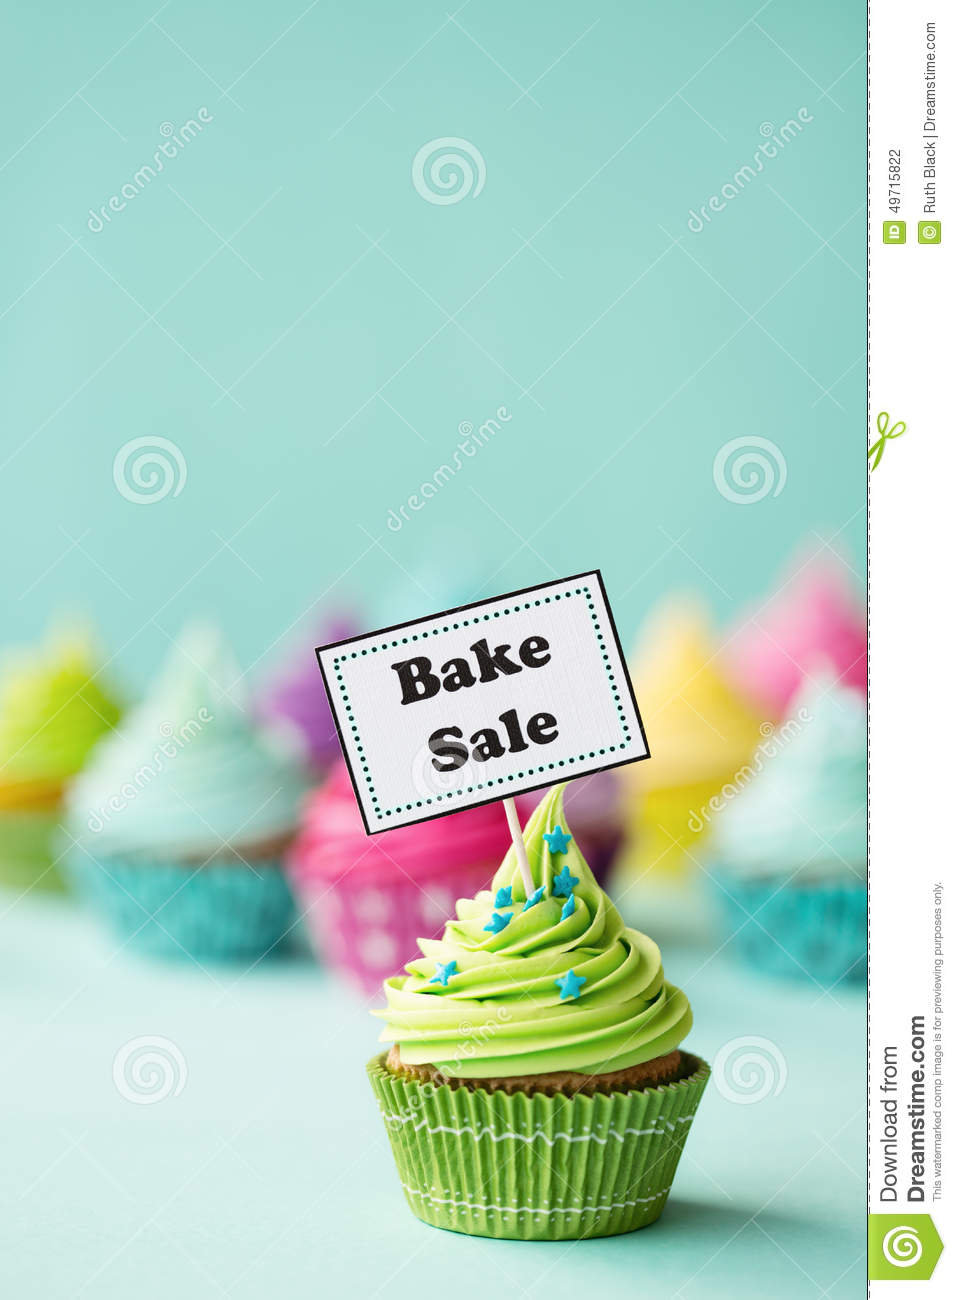 bake cupcake stock photo image  bake cupcake